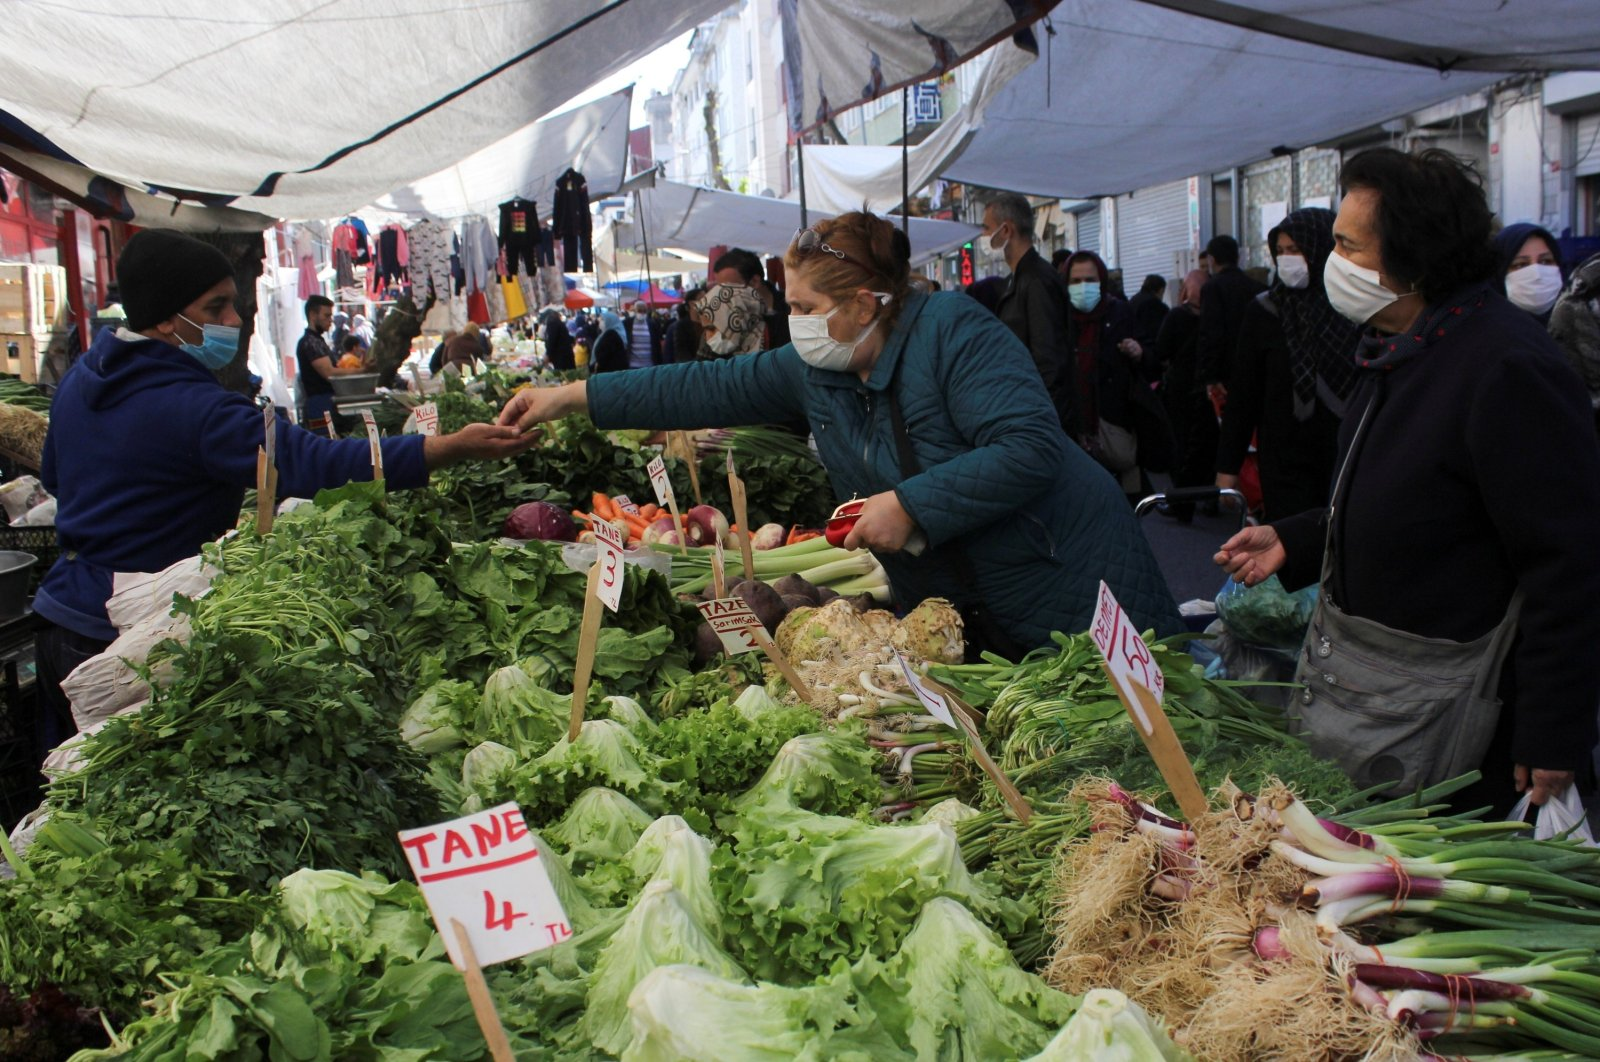 People wearing protective face masks shop at a fresh food market amid the COVID-19 pandemic, Istanbul, Turkey, April 26, 2021. (Reuters Photo)